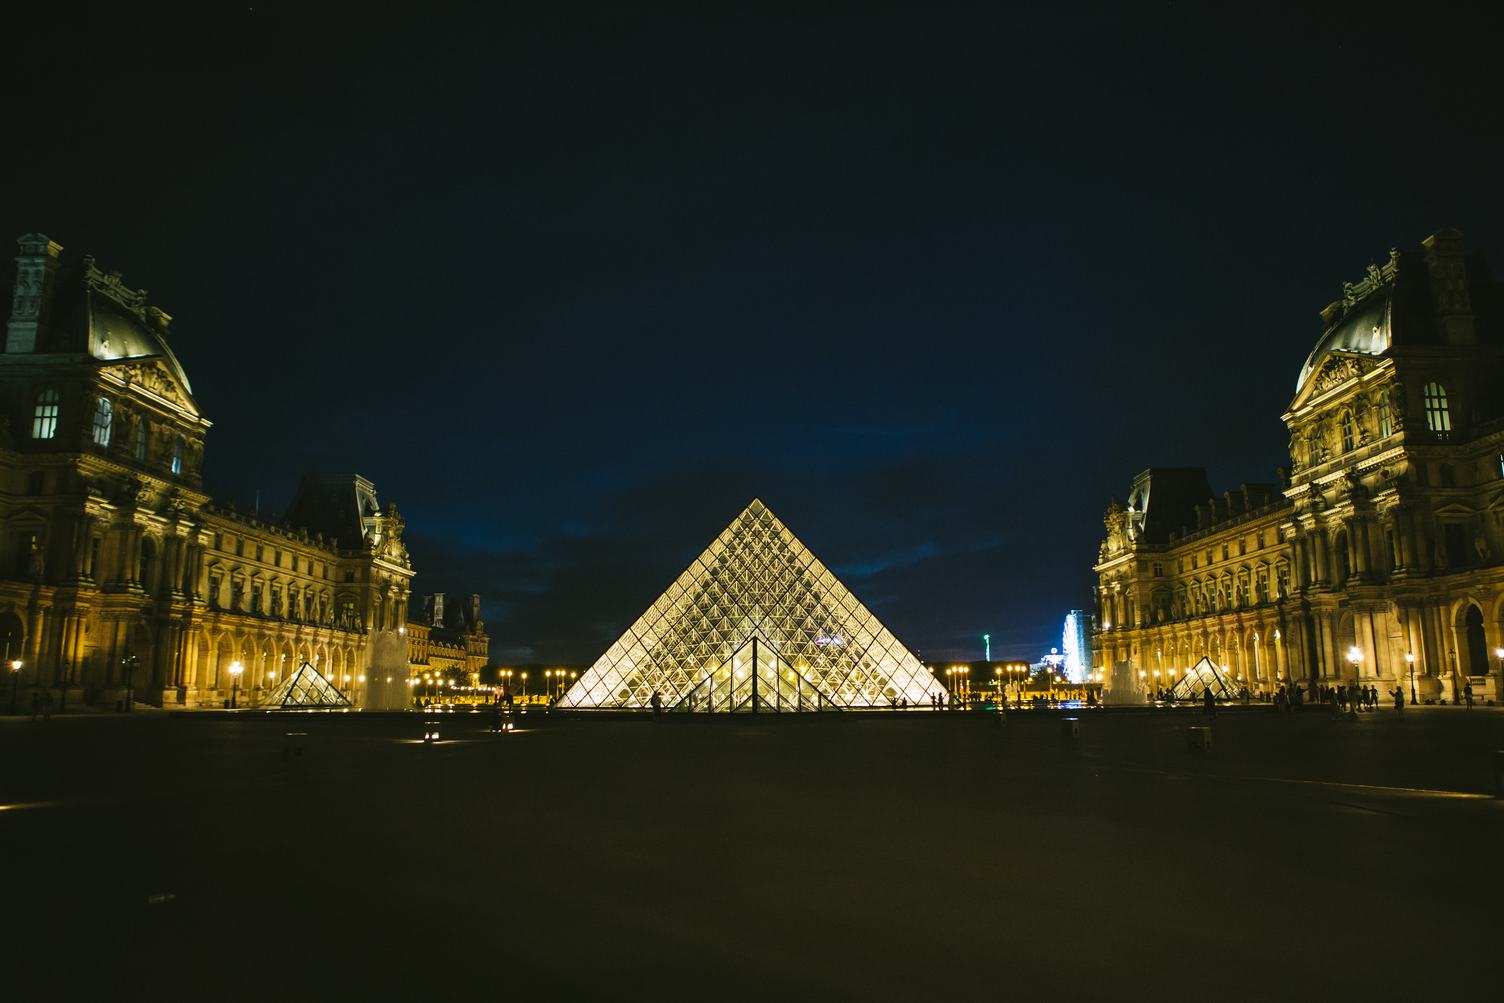 The Louvre Palace and the Pyramid by Night